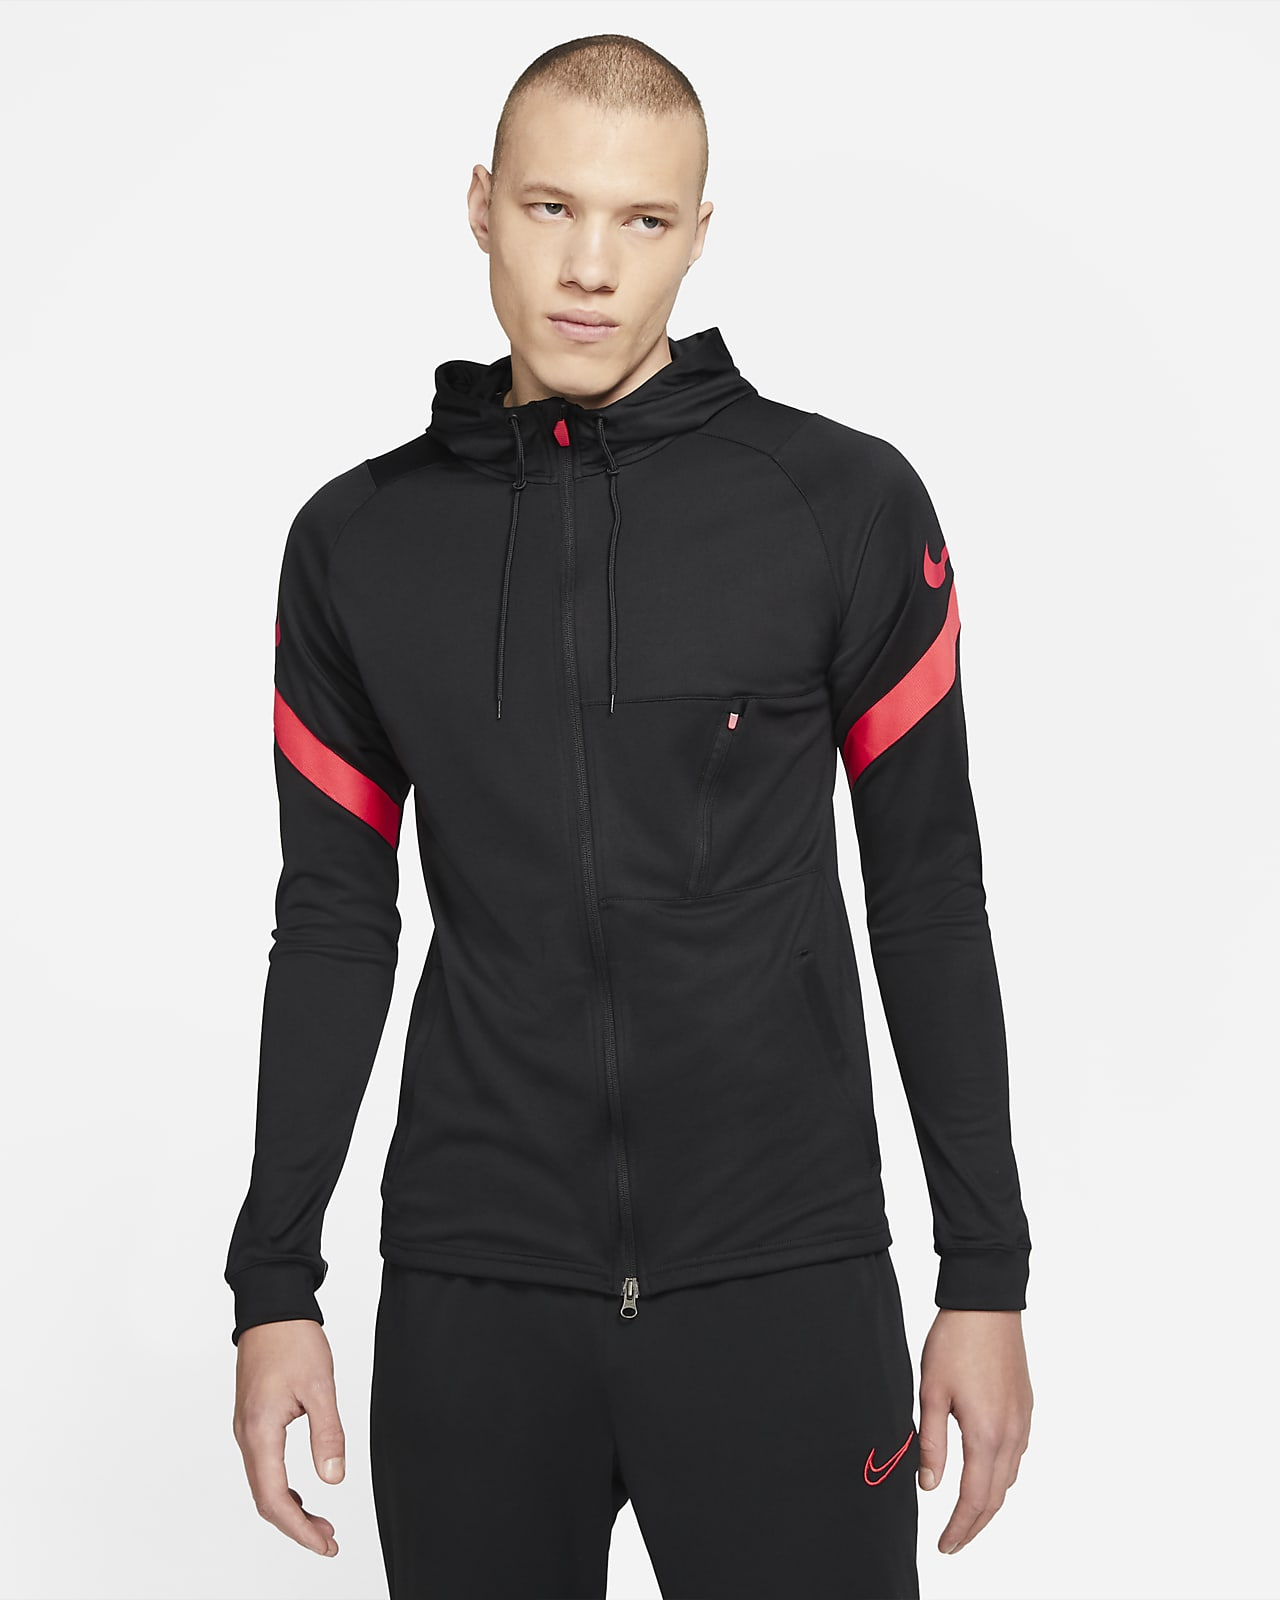 Nike Dri-FIT Strike Men's Full-Zip Hooded Soccer Jacket